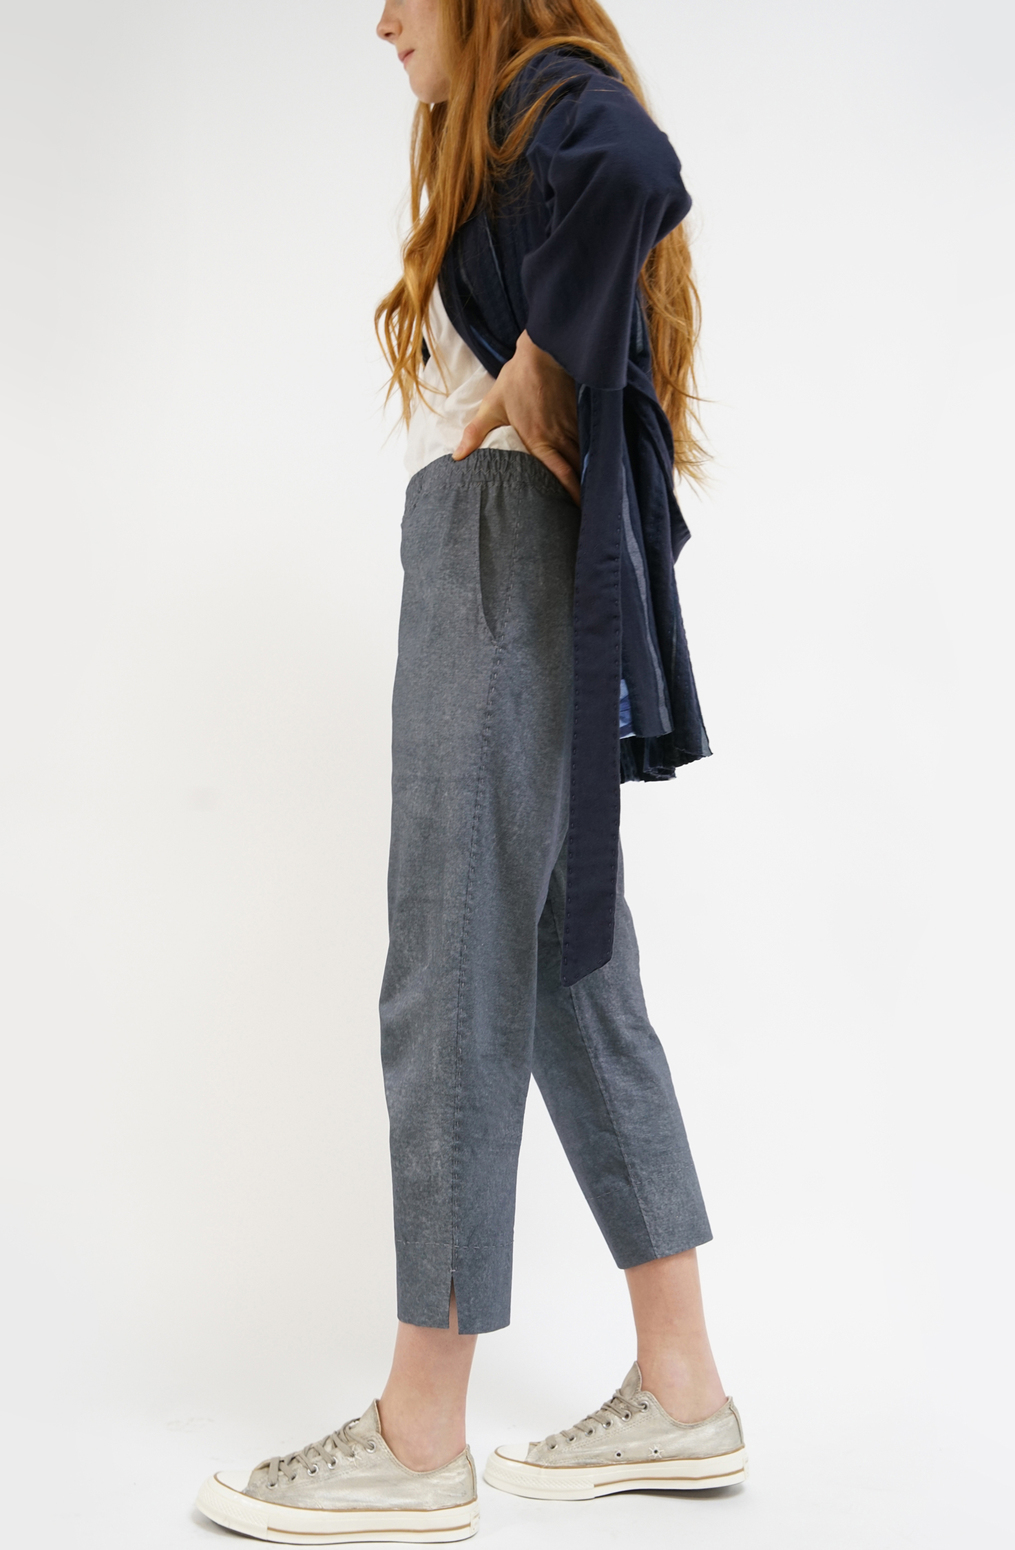 Alabama chanin essential crop pant2